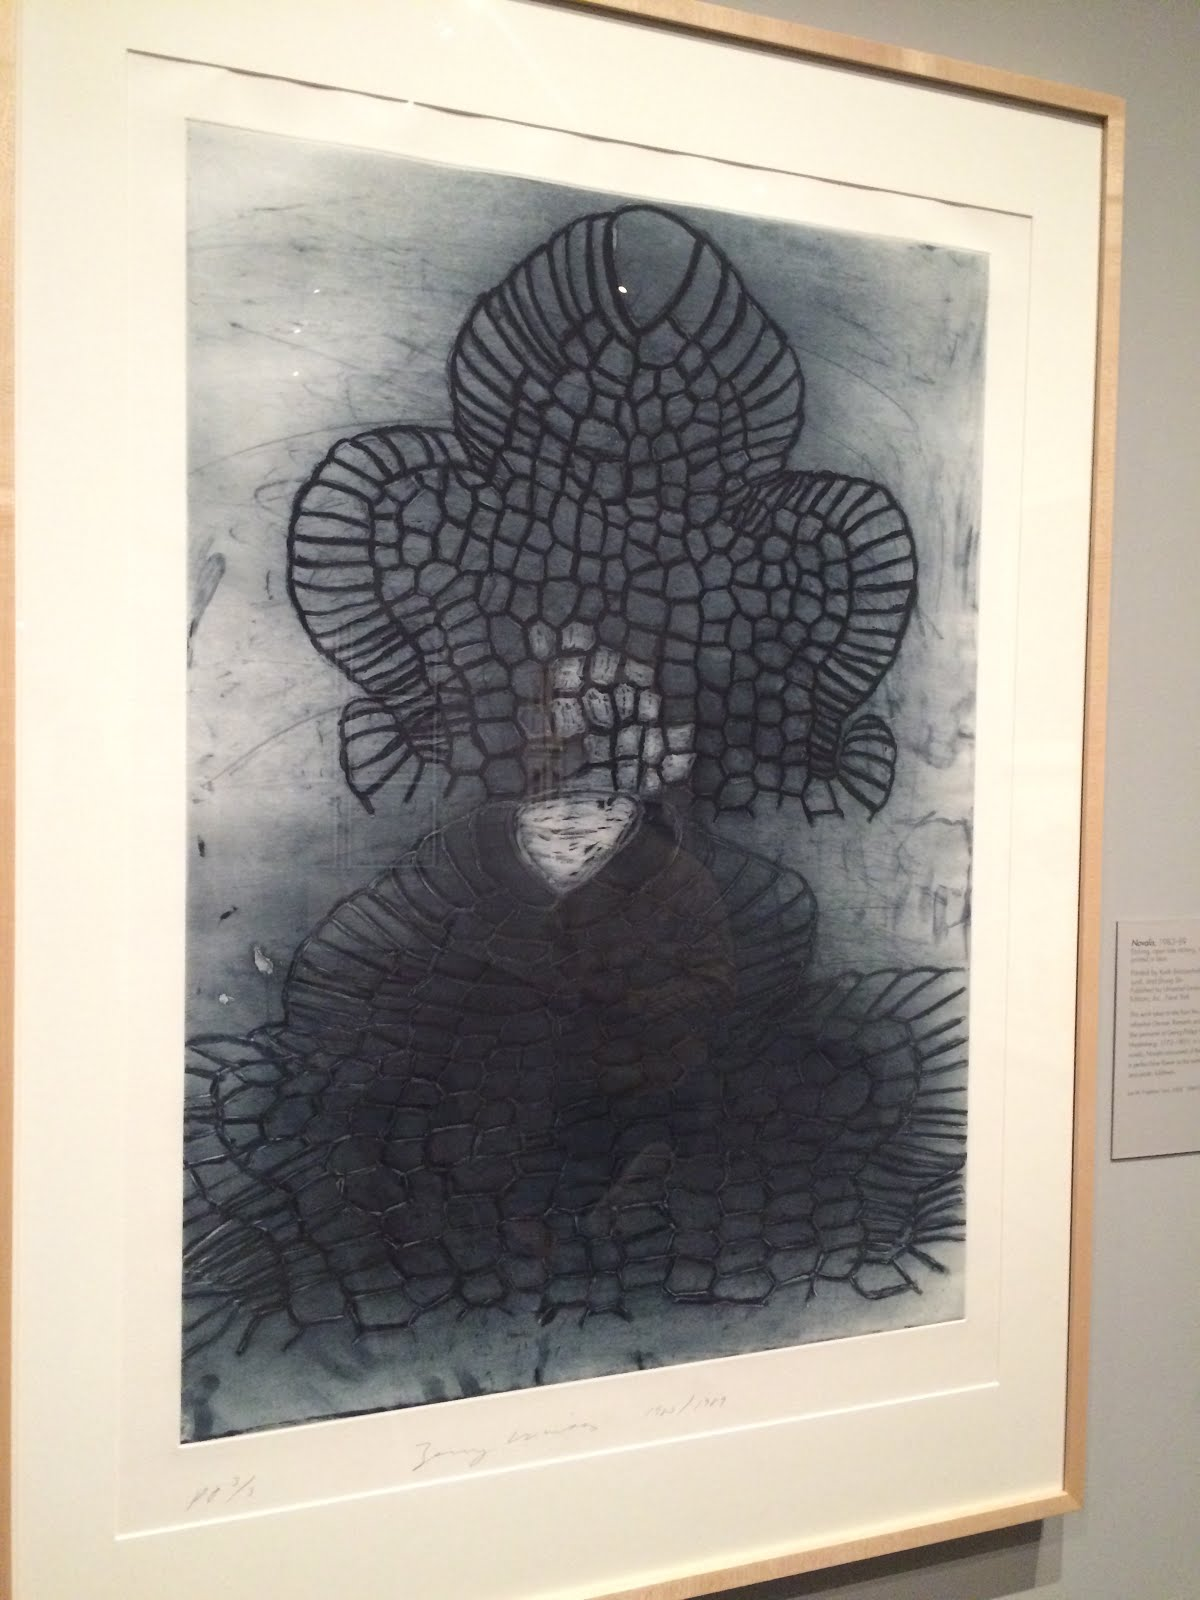 Two graces taos whats so great about terry winters the structure a drawing of an animal in a calligraphic style jarred something loose in my thinking forcing me to come back to the drawings and prints of terry winters solutioingenieria Images